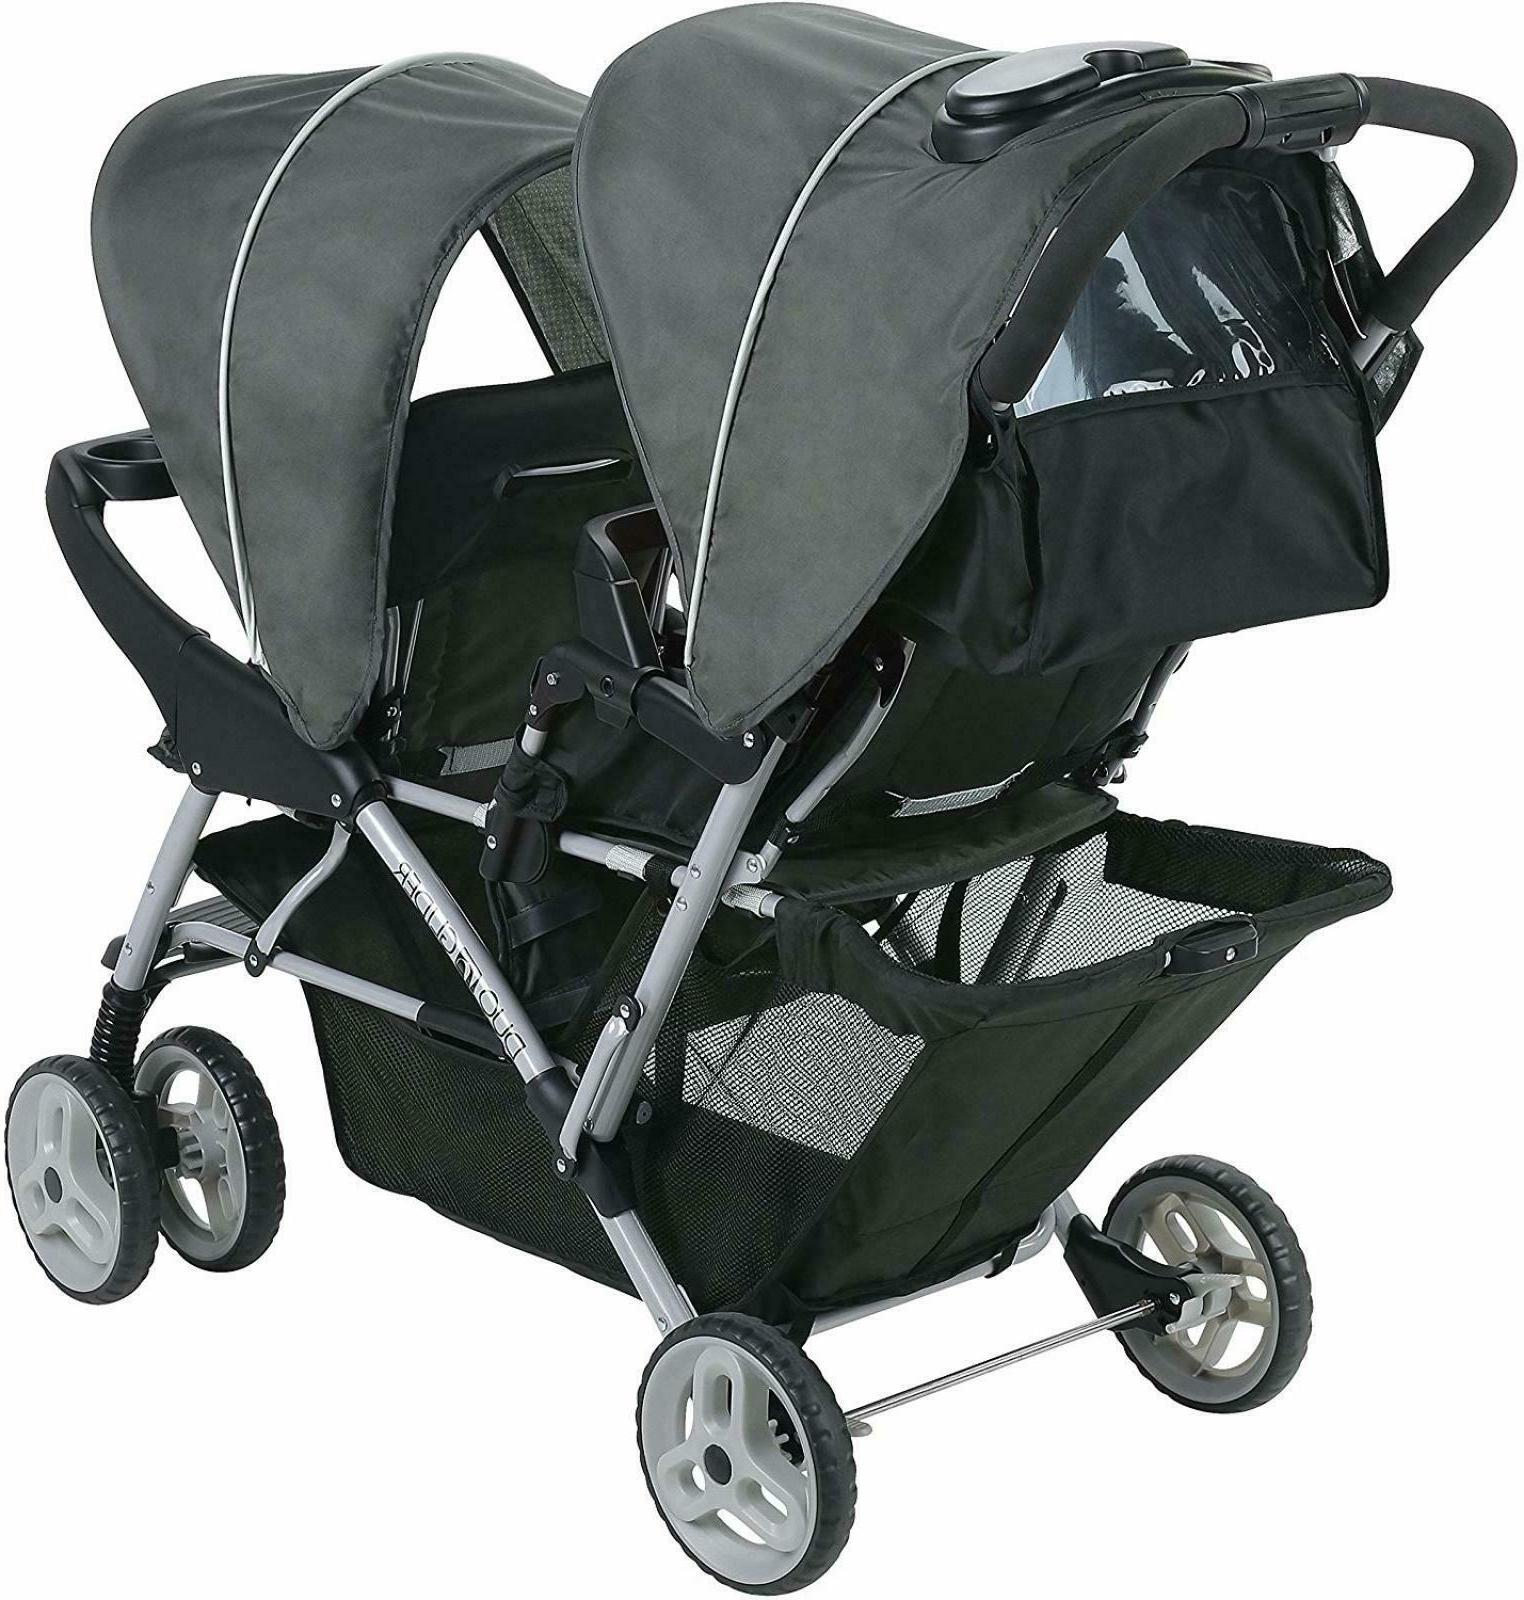 Graco Double Stroller Lightweight